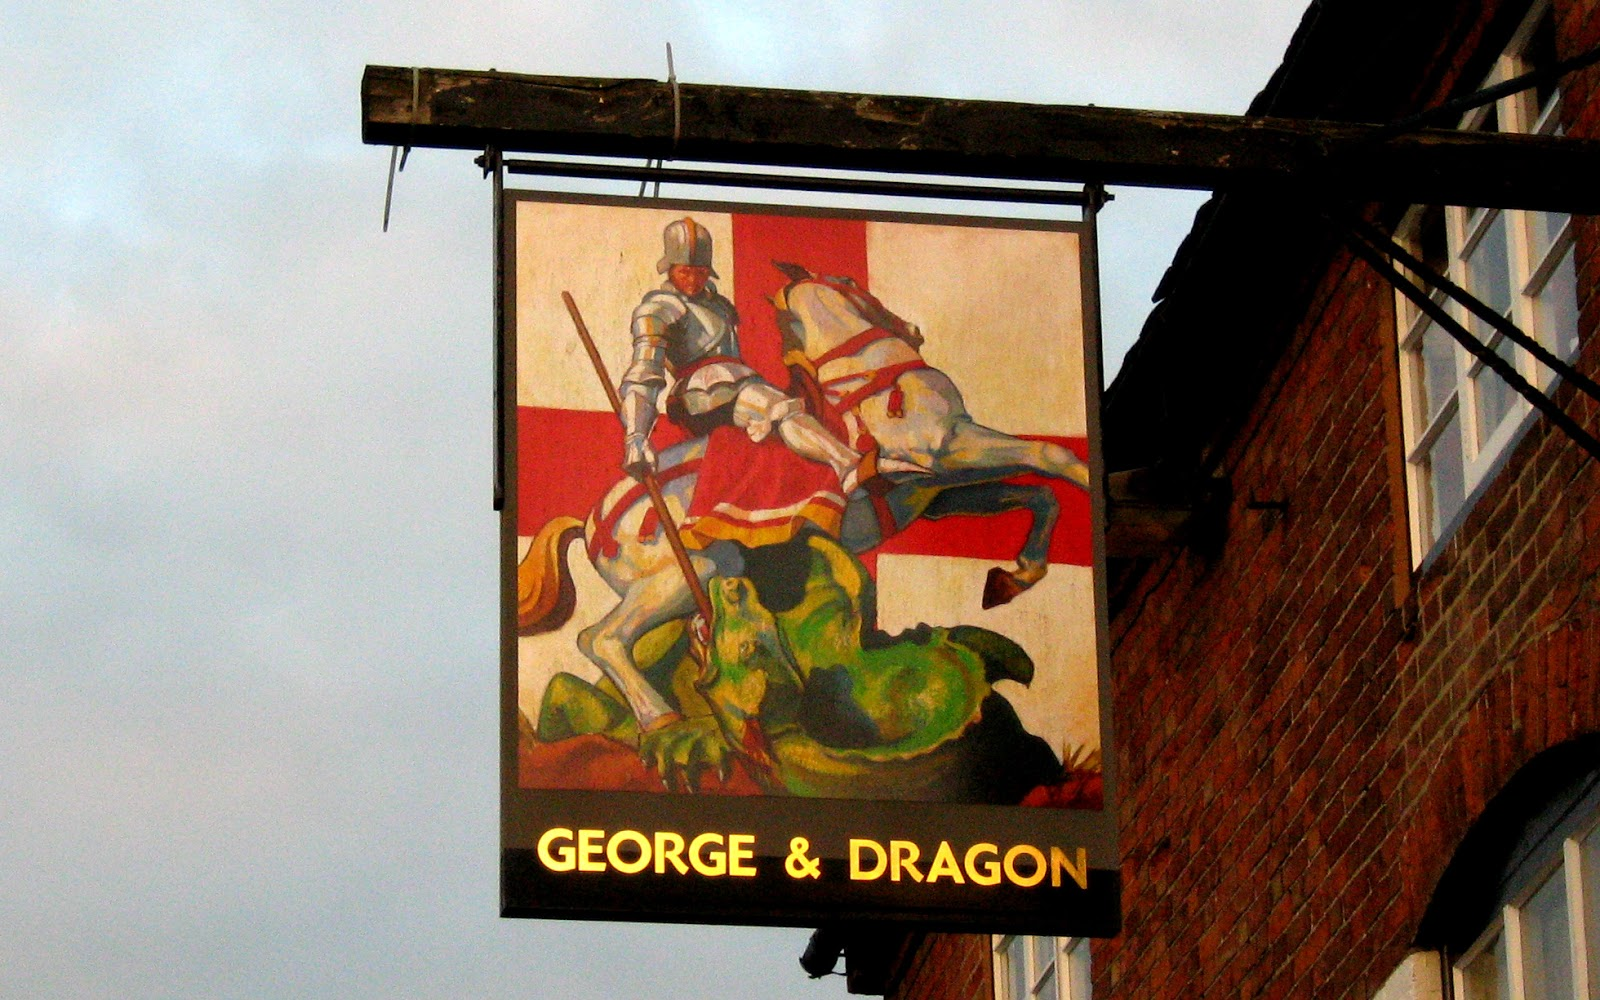 Pub sign at George & Dragon, Alrewas